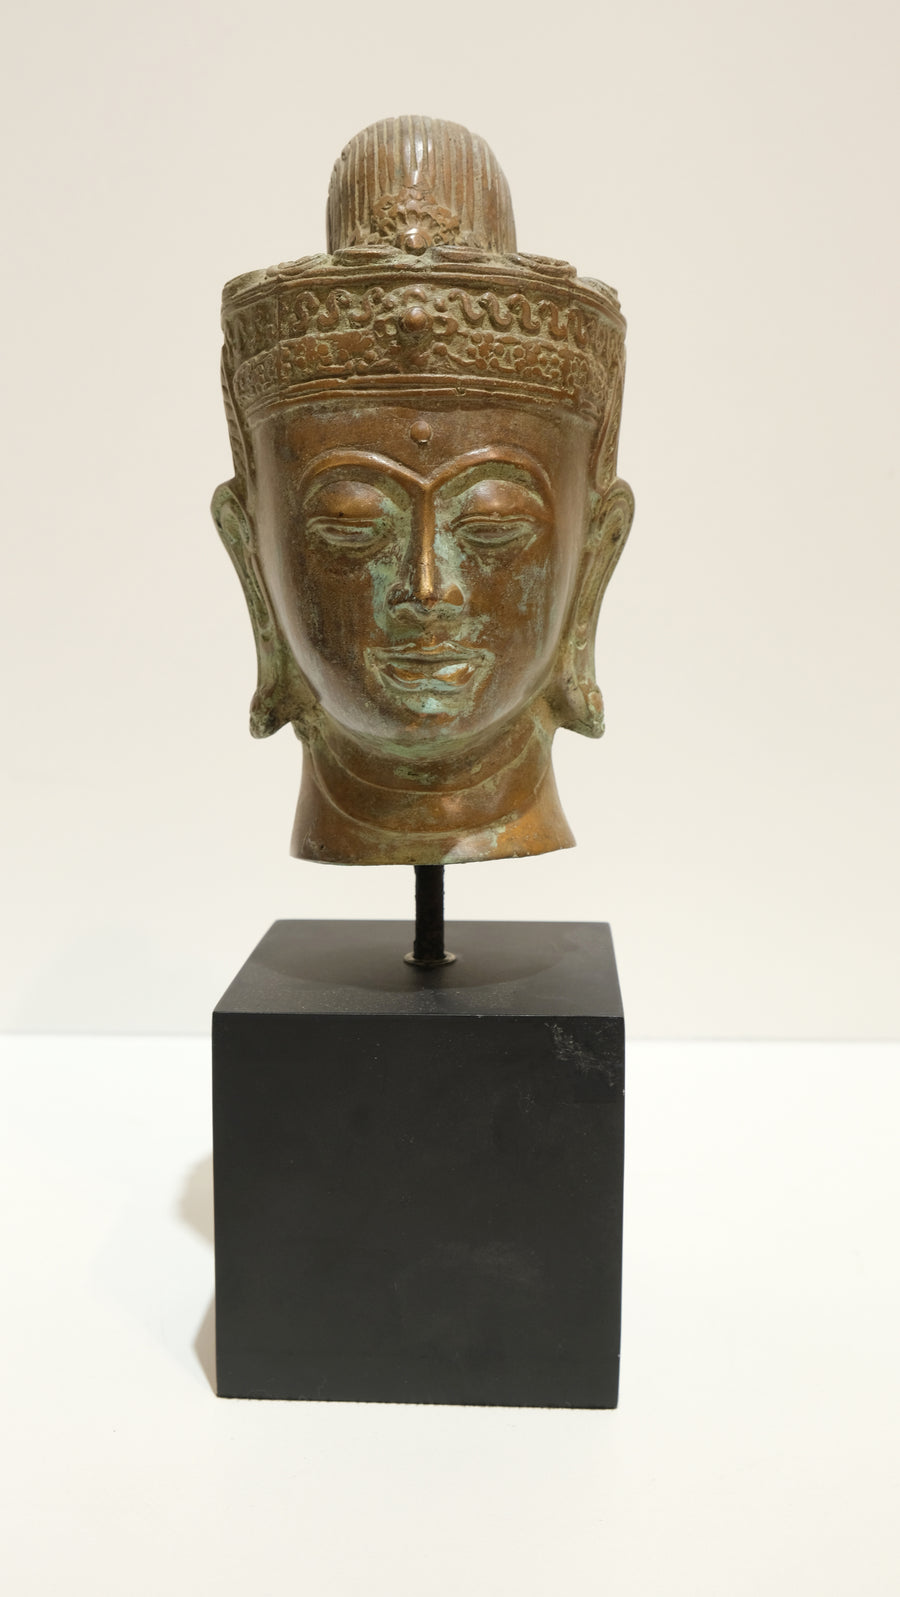 LARGE ANTIQUED METAL BUDDHA HEAD